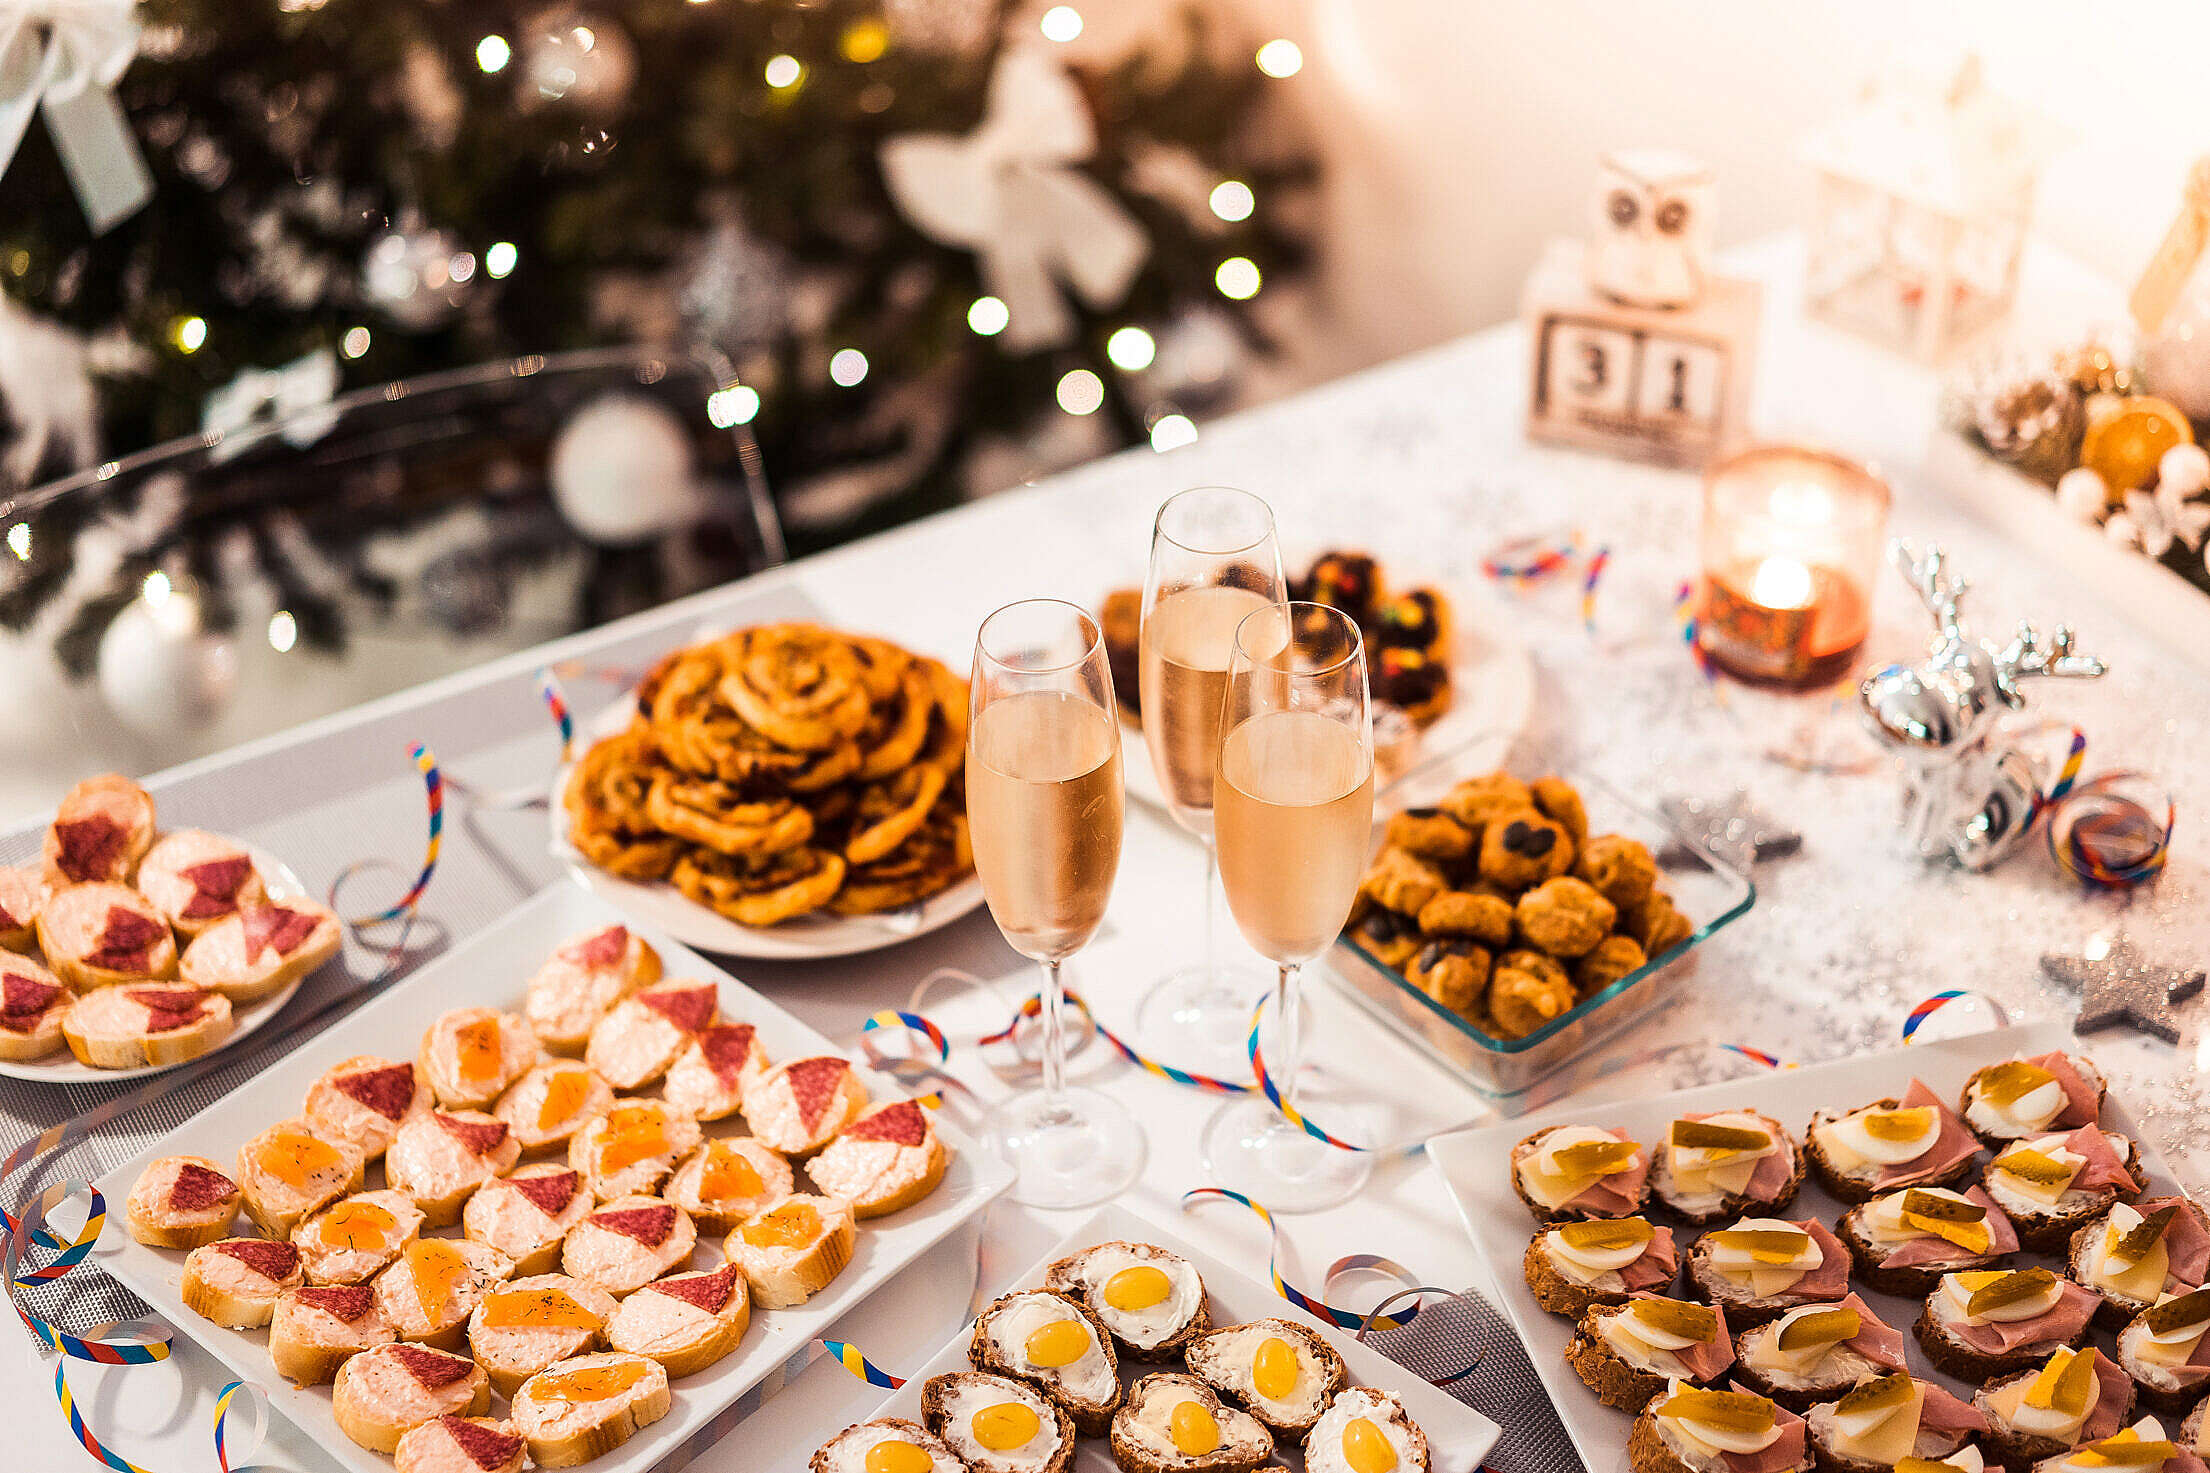 New Years Eve Party Free Stock Photo